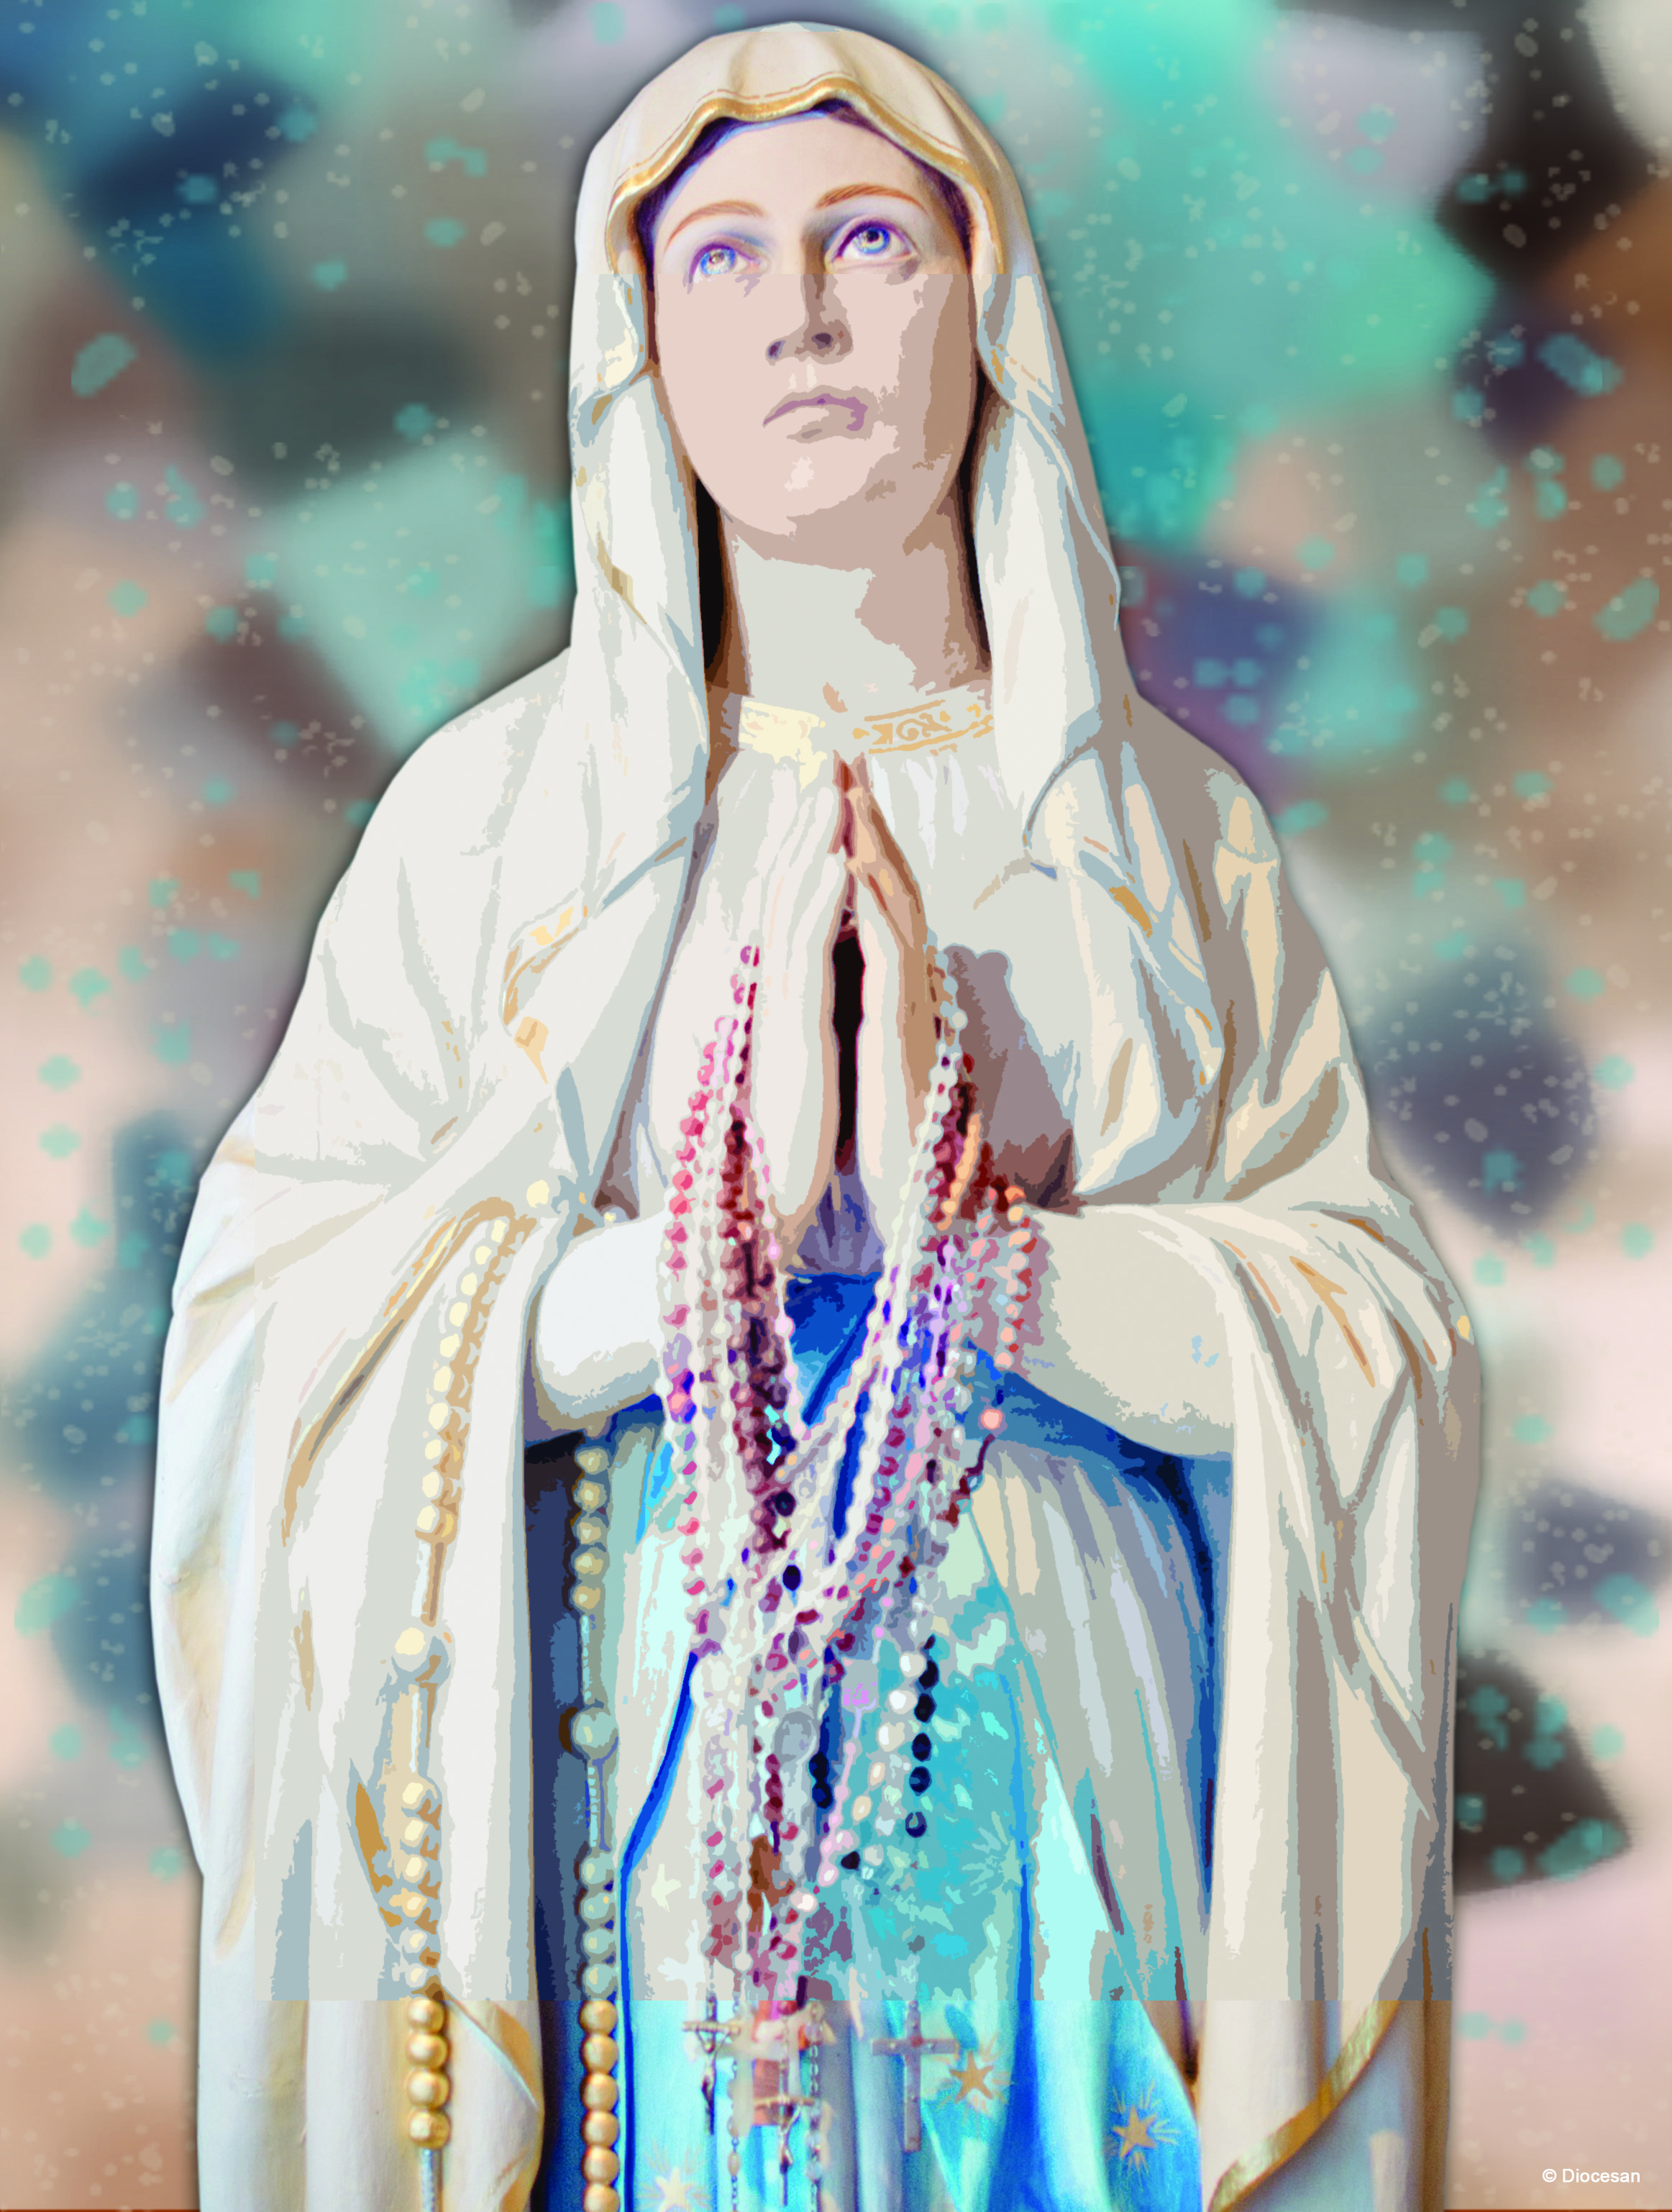 October - Dedicated to the Rosary - E